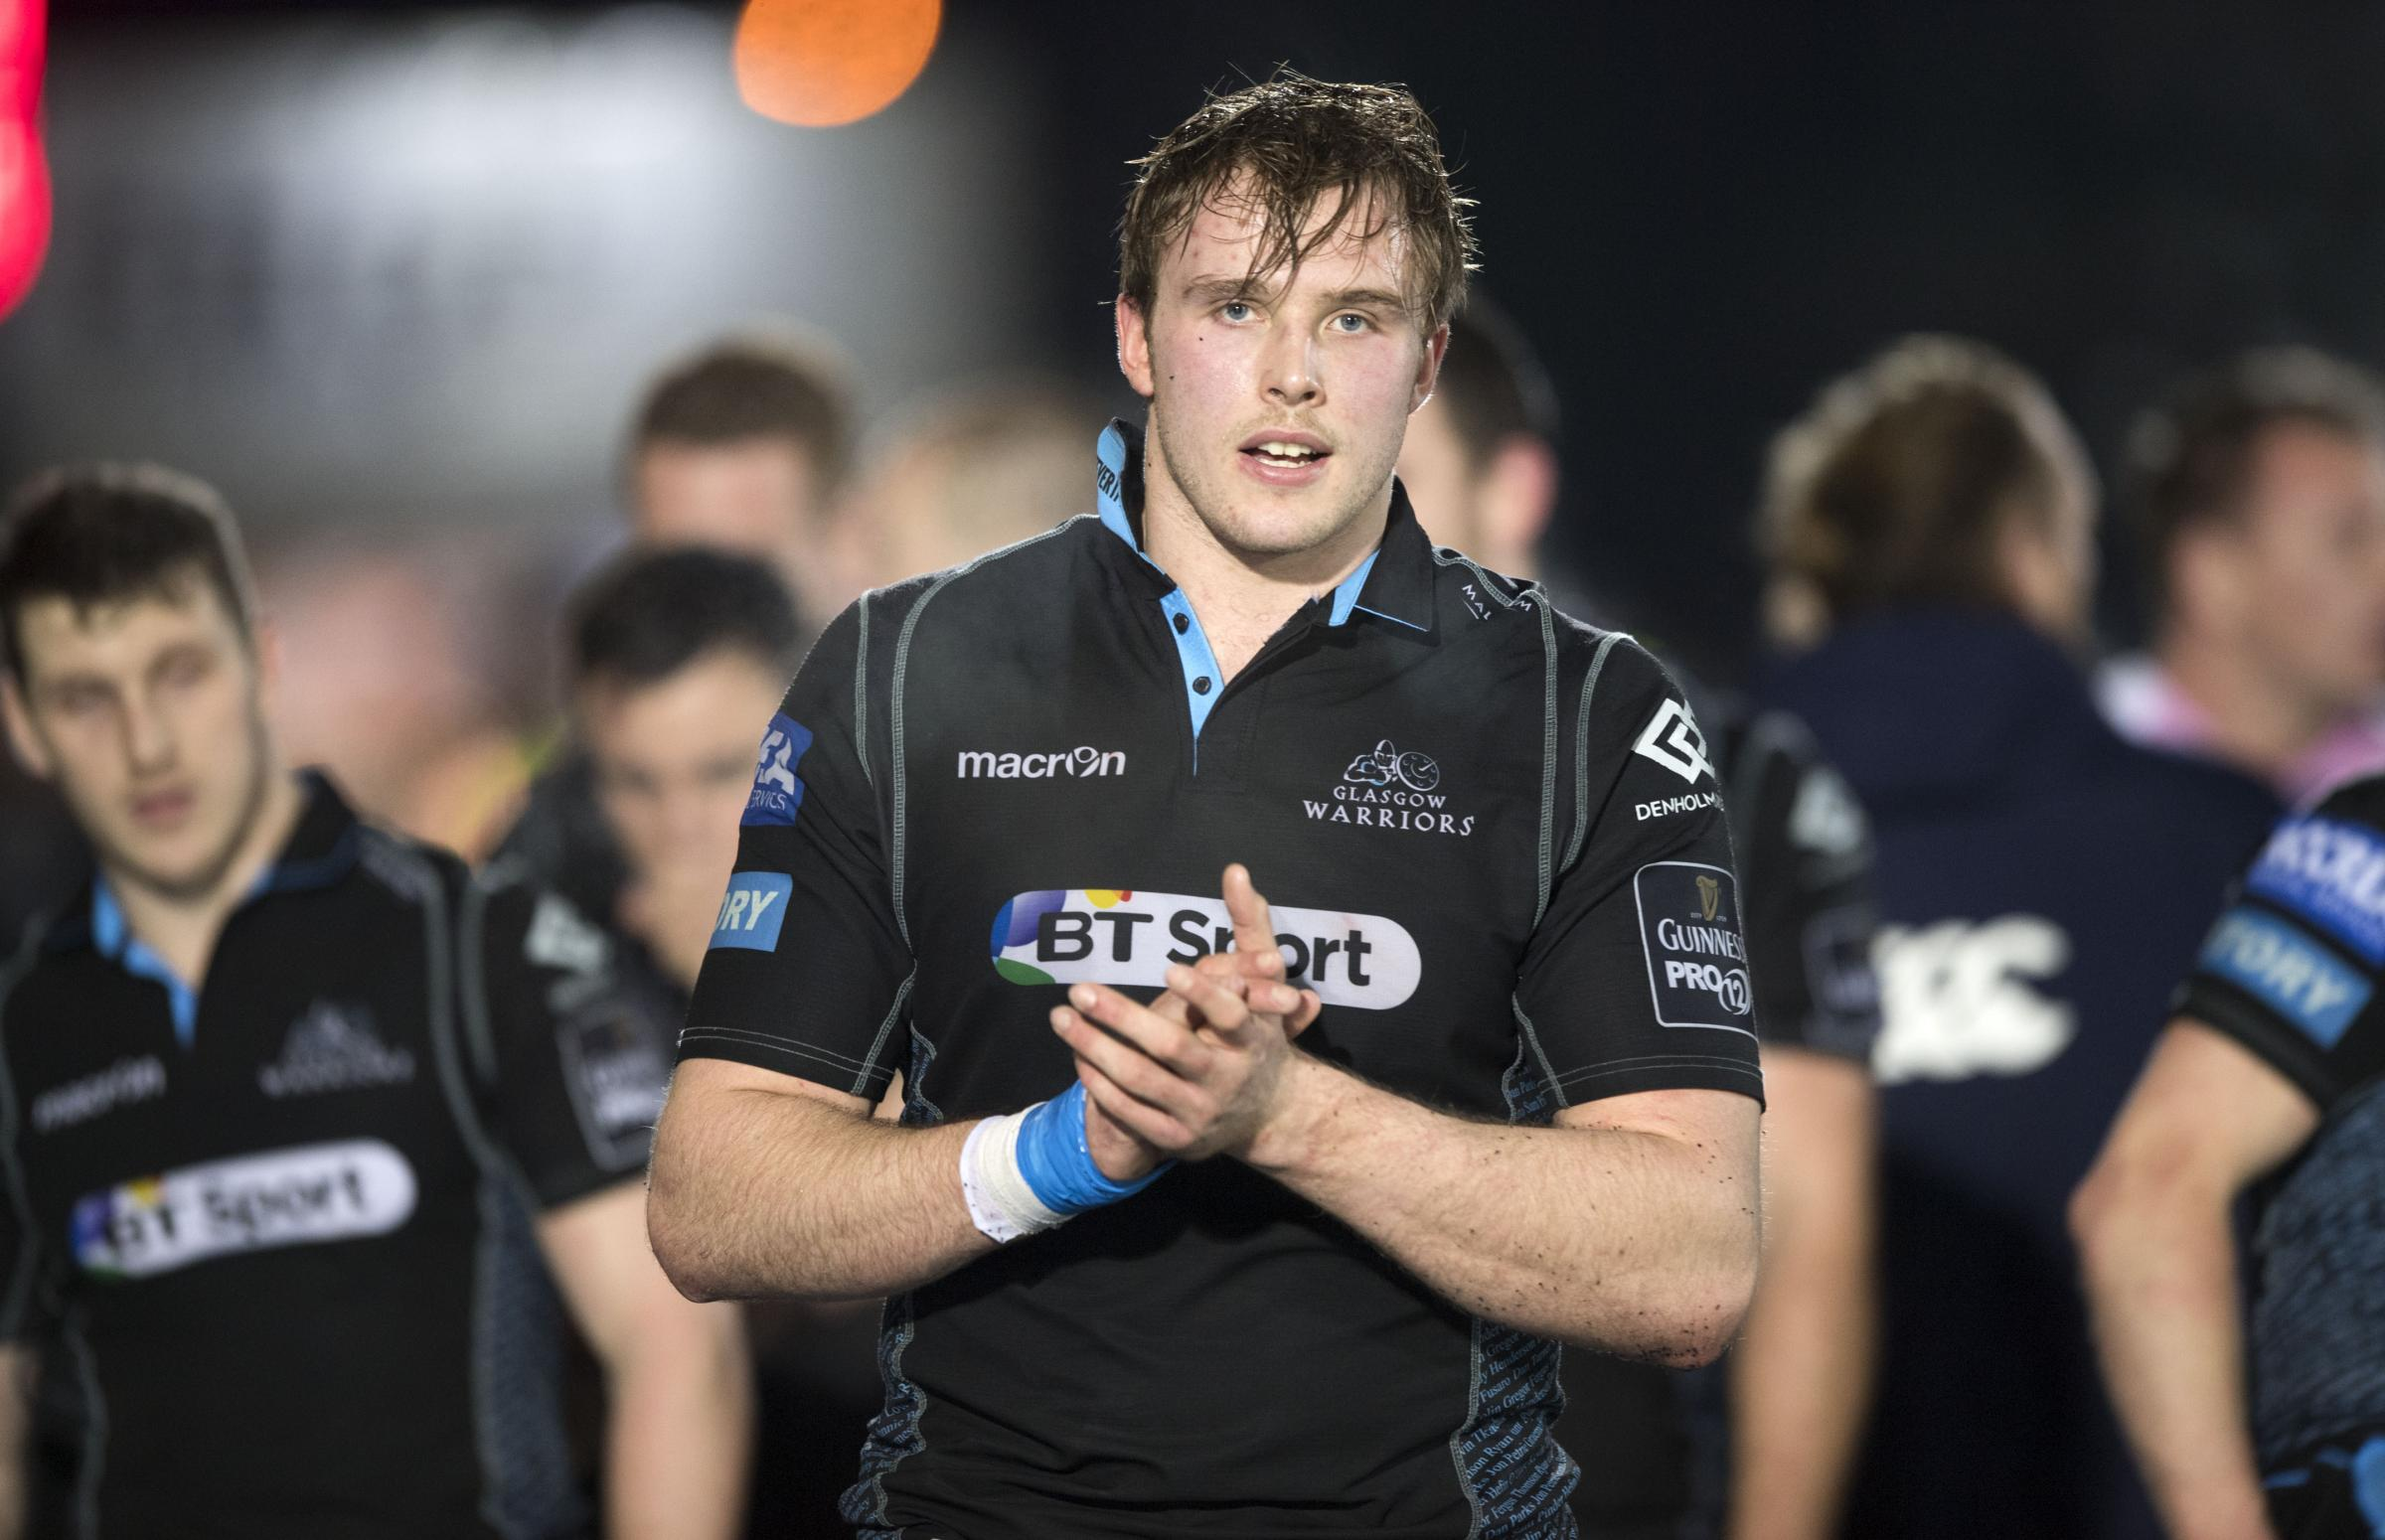 jonny gray height